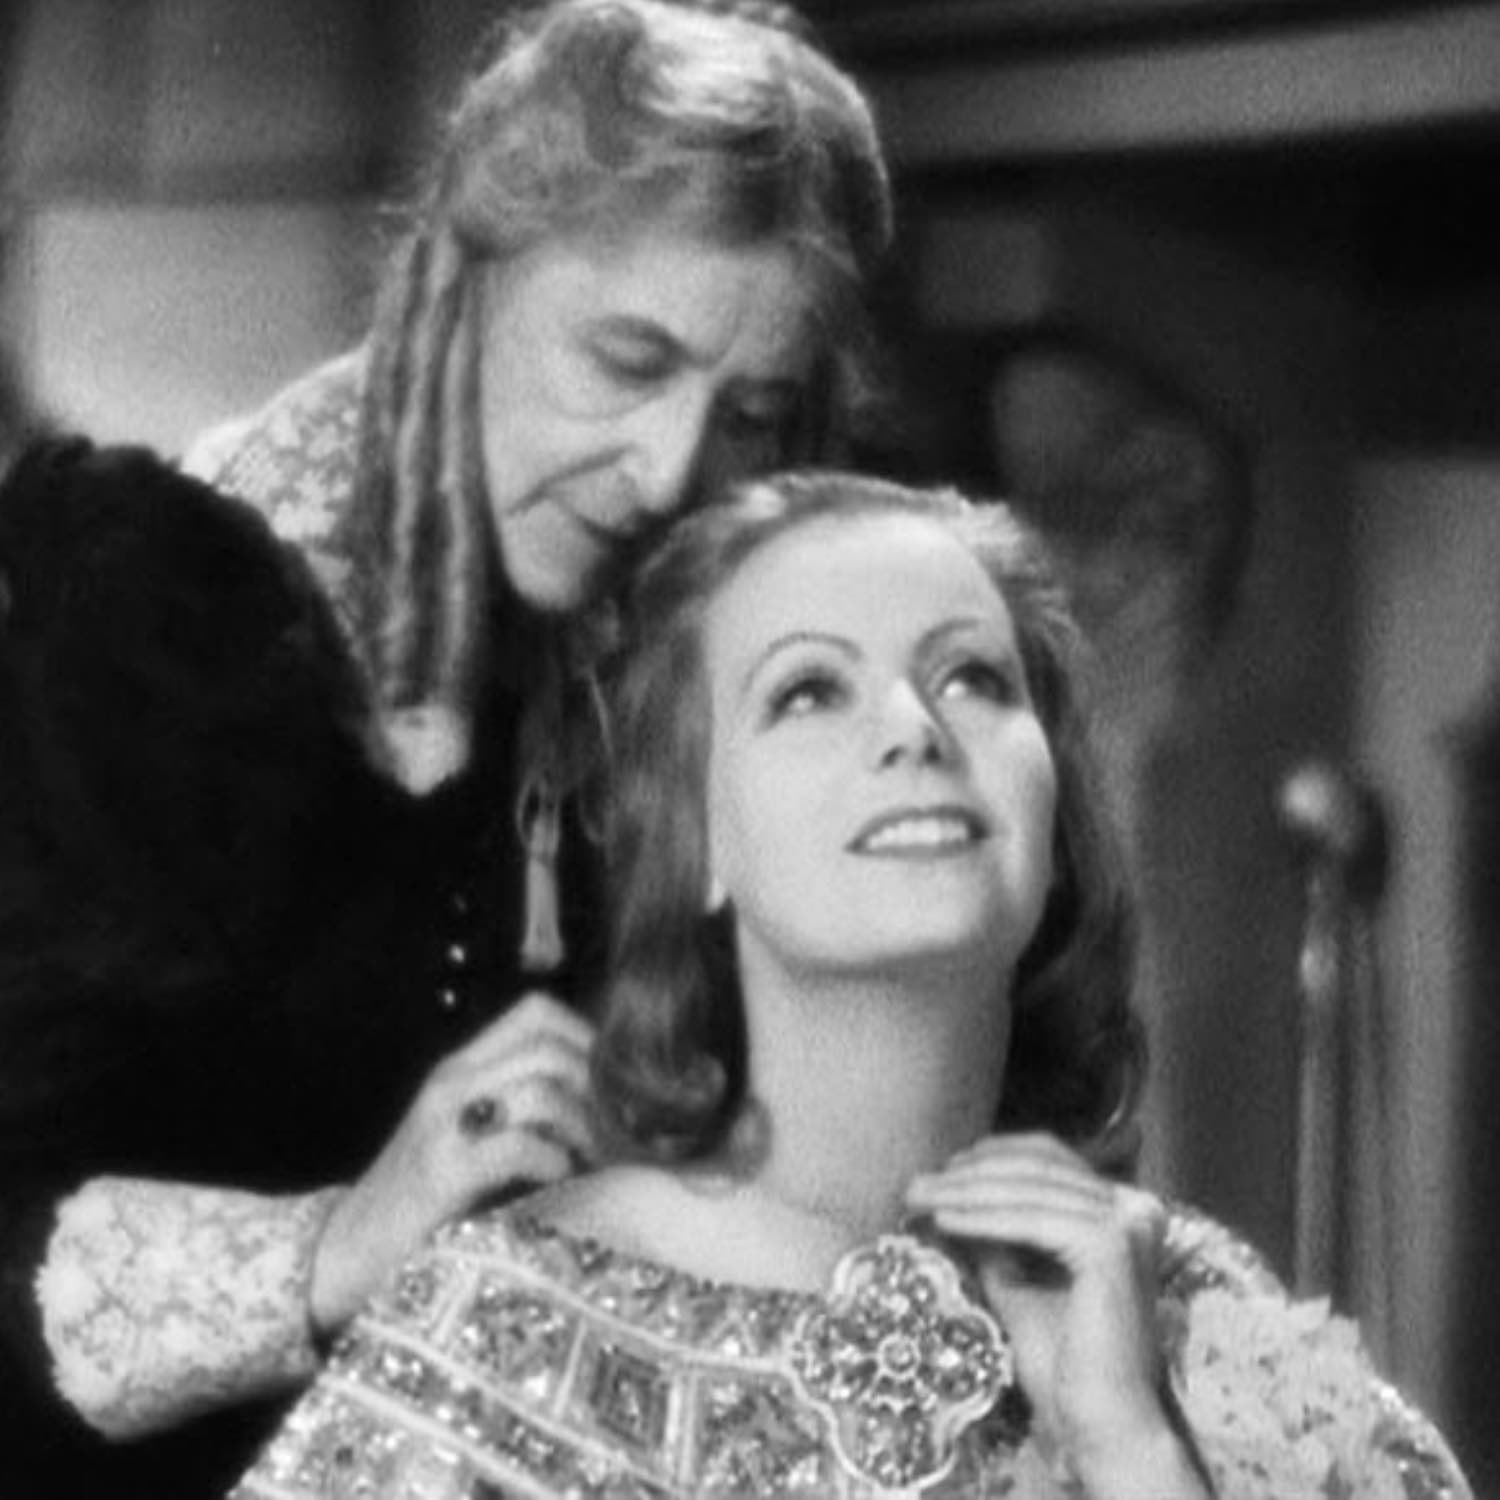 Greta Garbo getting dress and chatting with her handmaiden. This was the best image we had of the pendant.